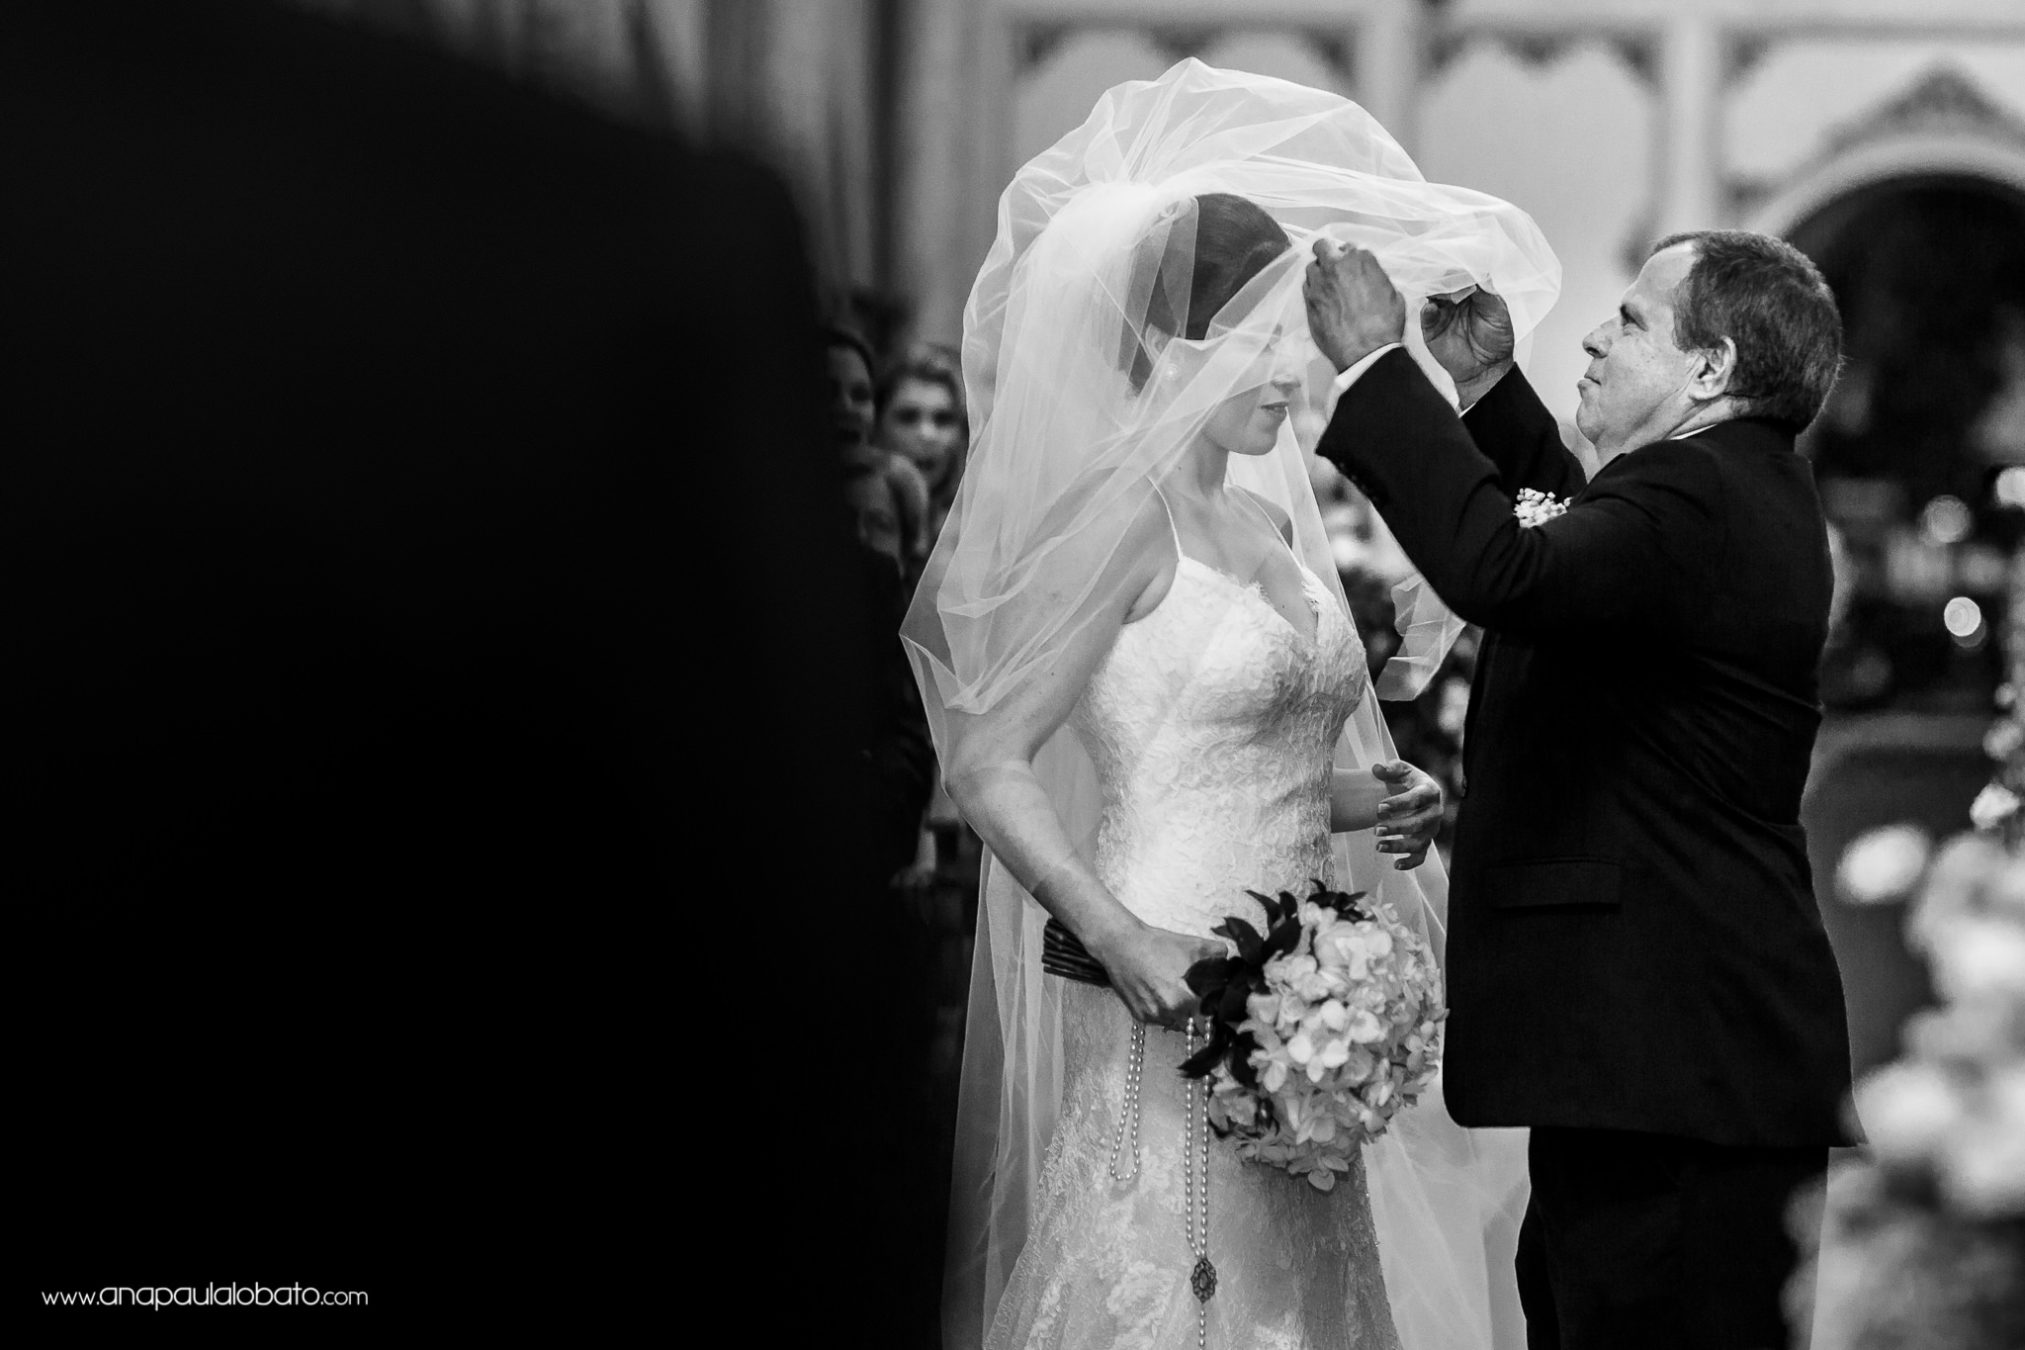 Father takes out the veil of the bride